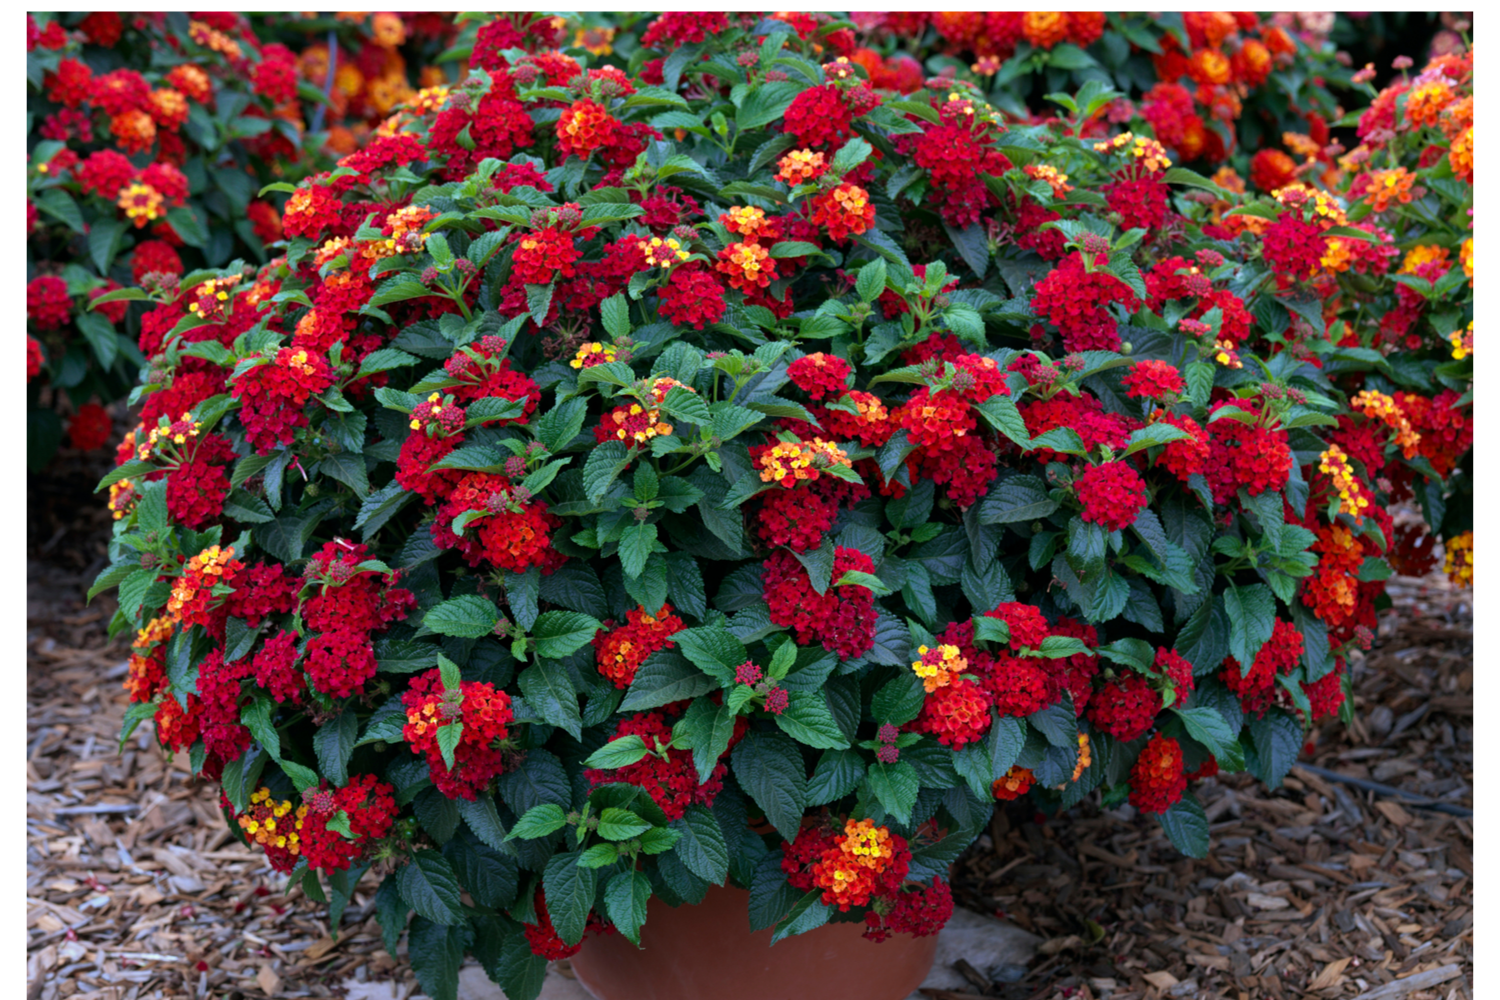 Lantana Pictures National Garden Bureau In 2020 Plants Lantana Lantana Plant